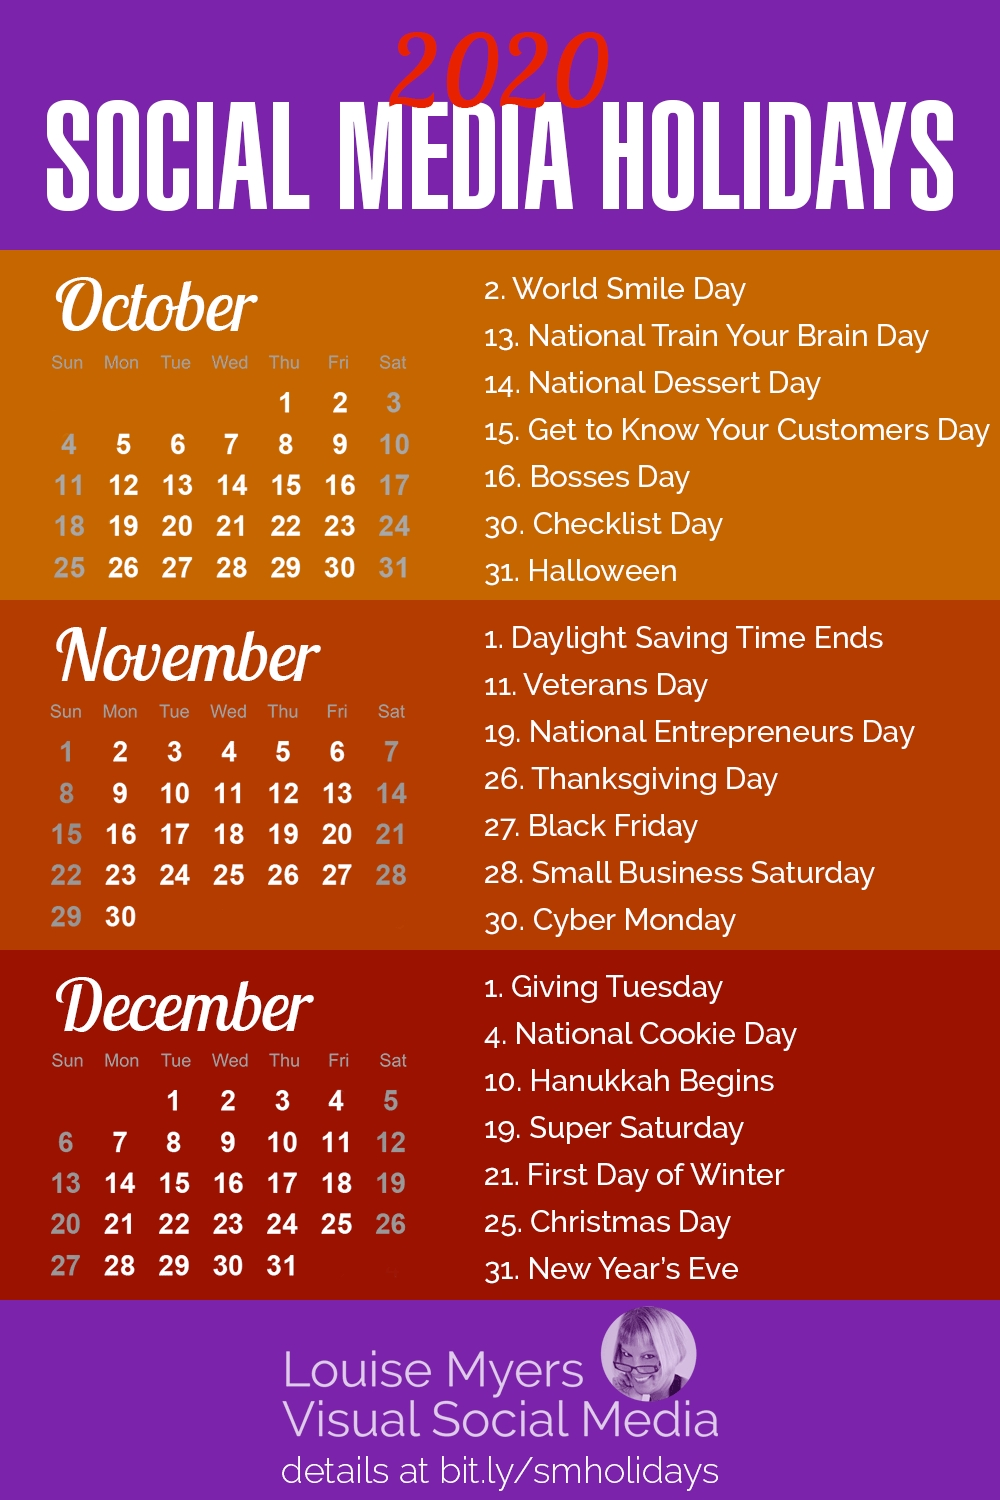 84 Social Media Holidays You Need In 2020: Indispensable! for Calendar Of Special Days 2020